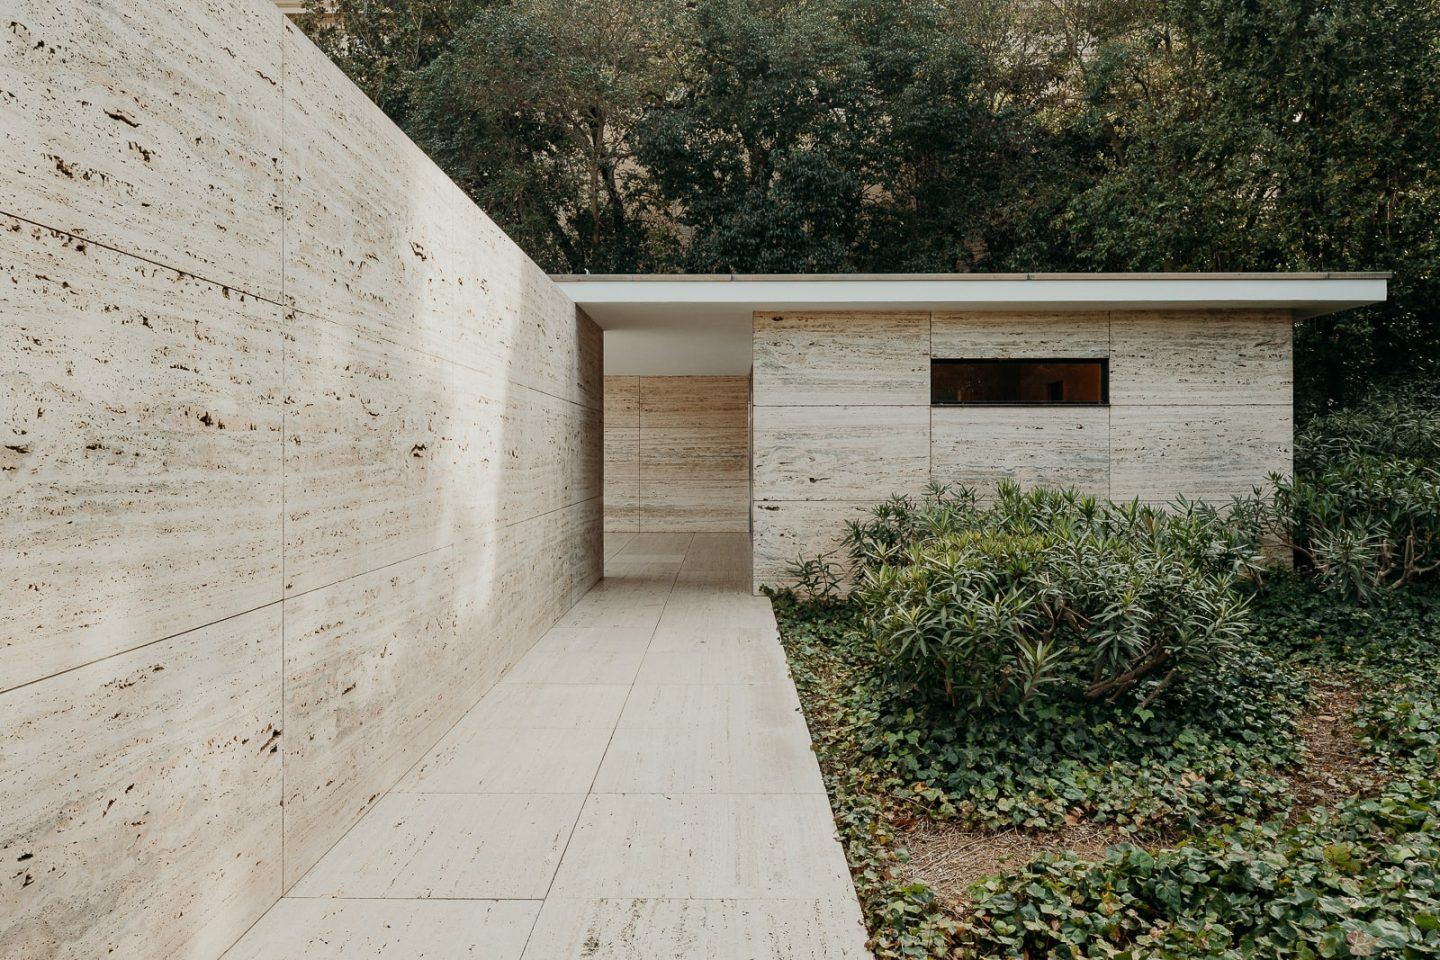 IGNANT-Architecture-Barcelona-Pavilion-Ludwig-Mies-Van-Der-Rohe-Maciej-Jezyk-020